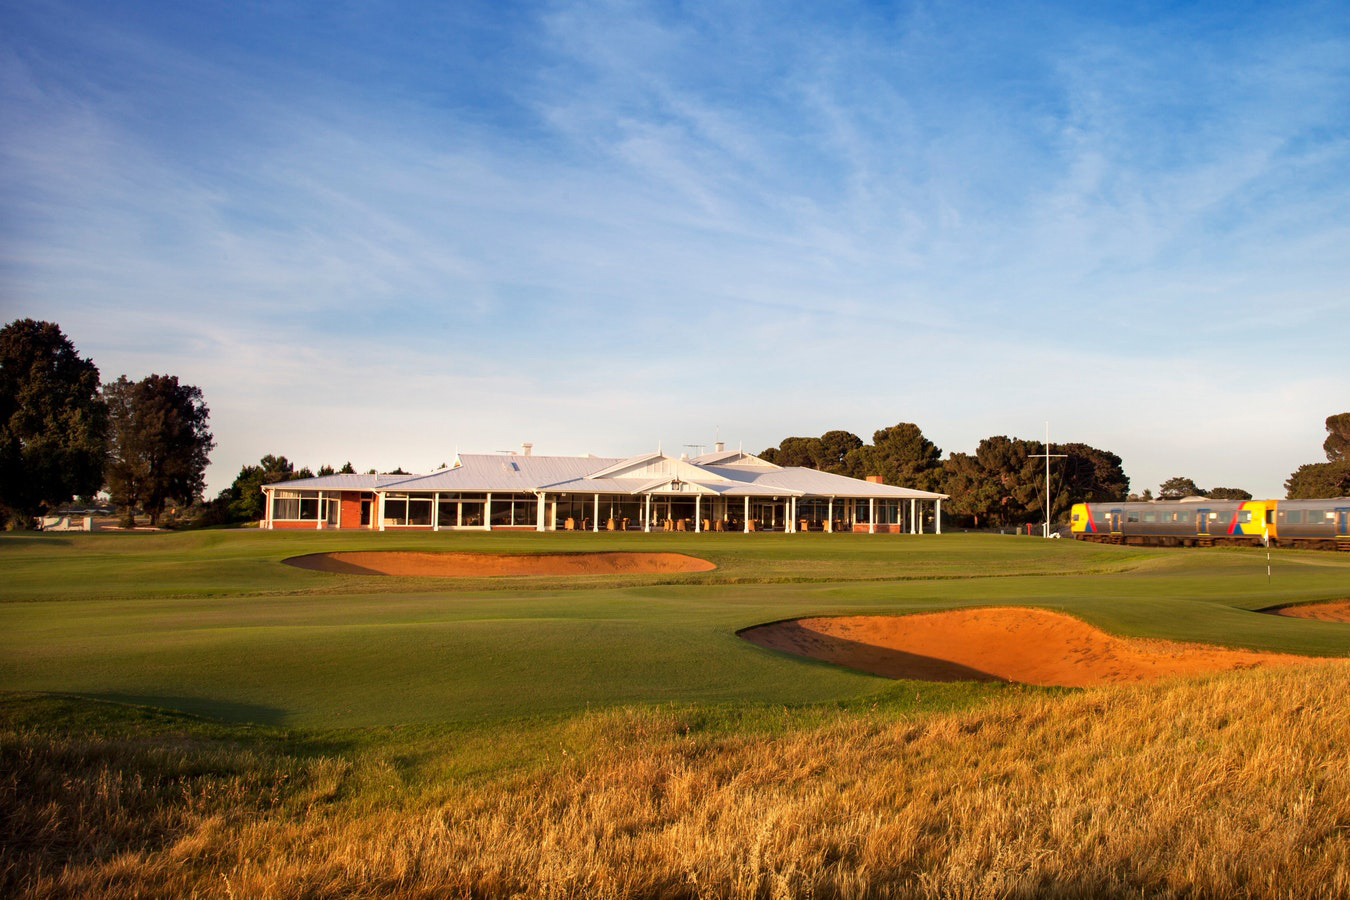 Royal Adelaide Golf Club Strategic Planning - Client - The Royal Adelaide Golf Club